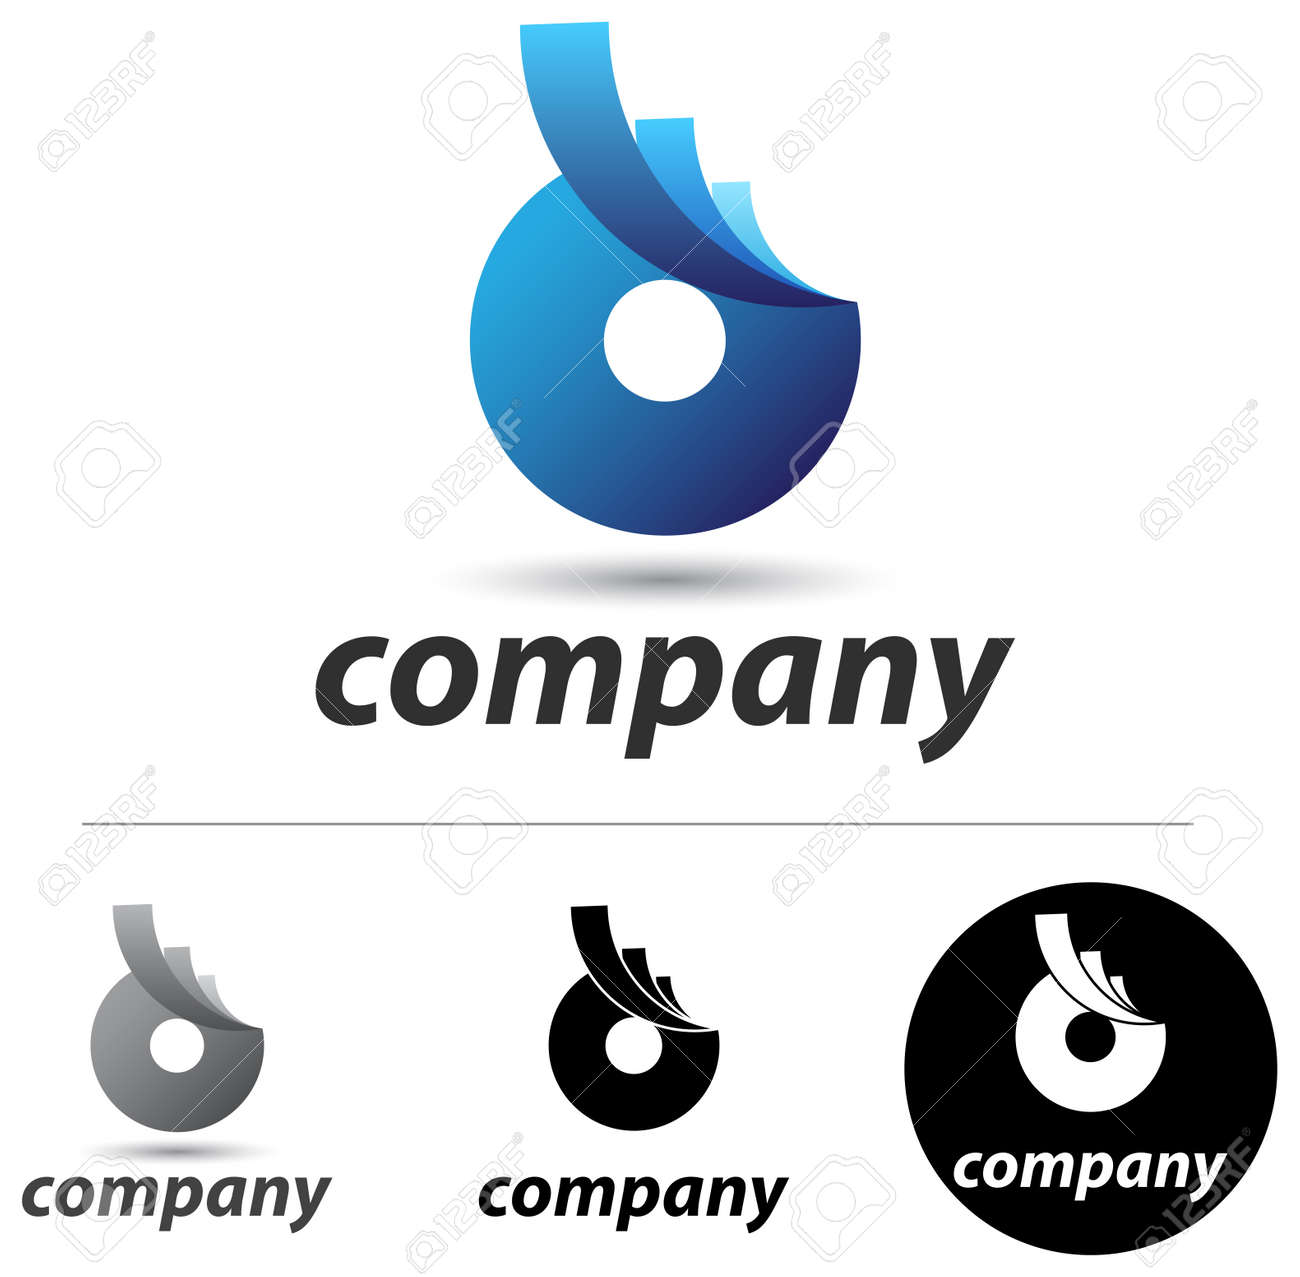 Corporate Logo Or Icon Design With An Abstract Blue Form Royalty ...